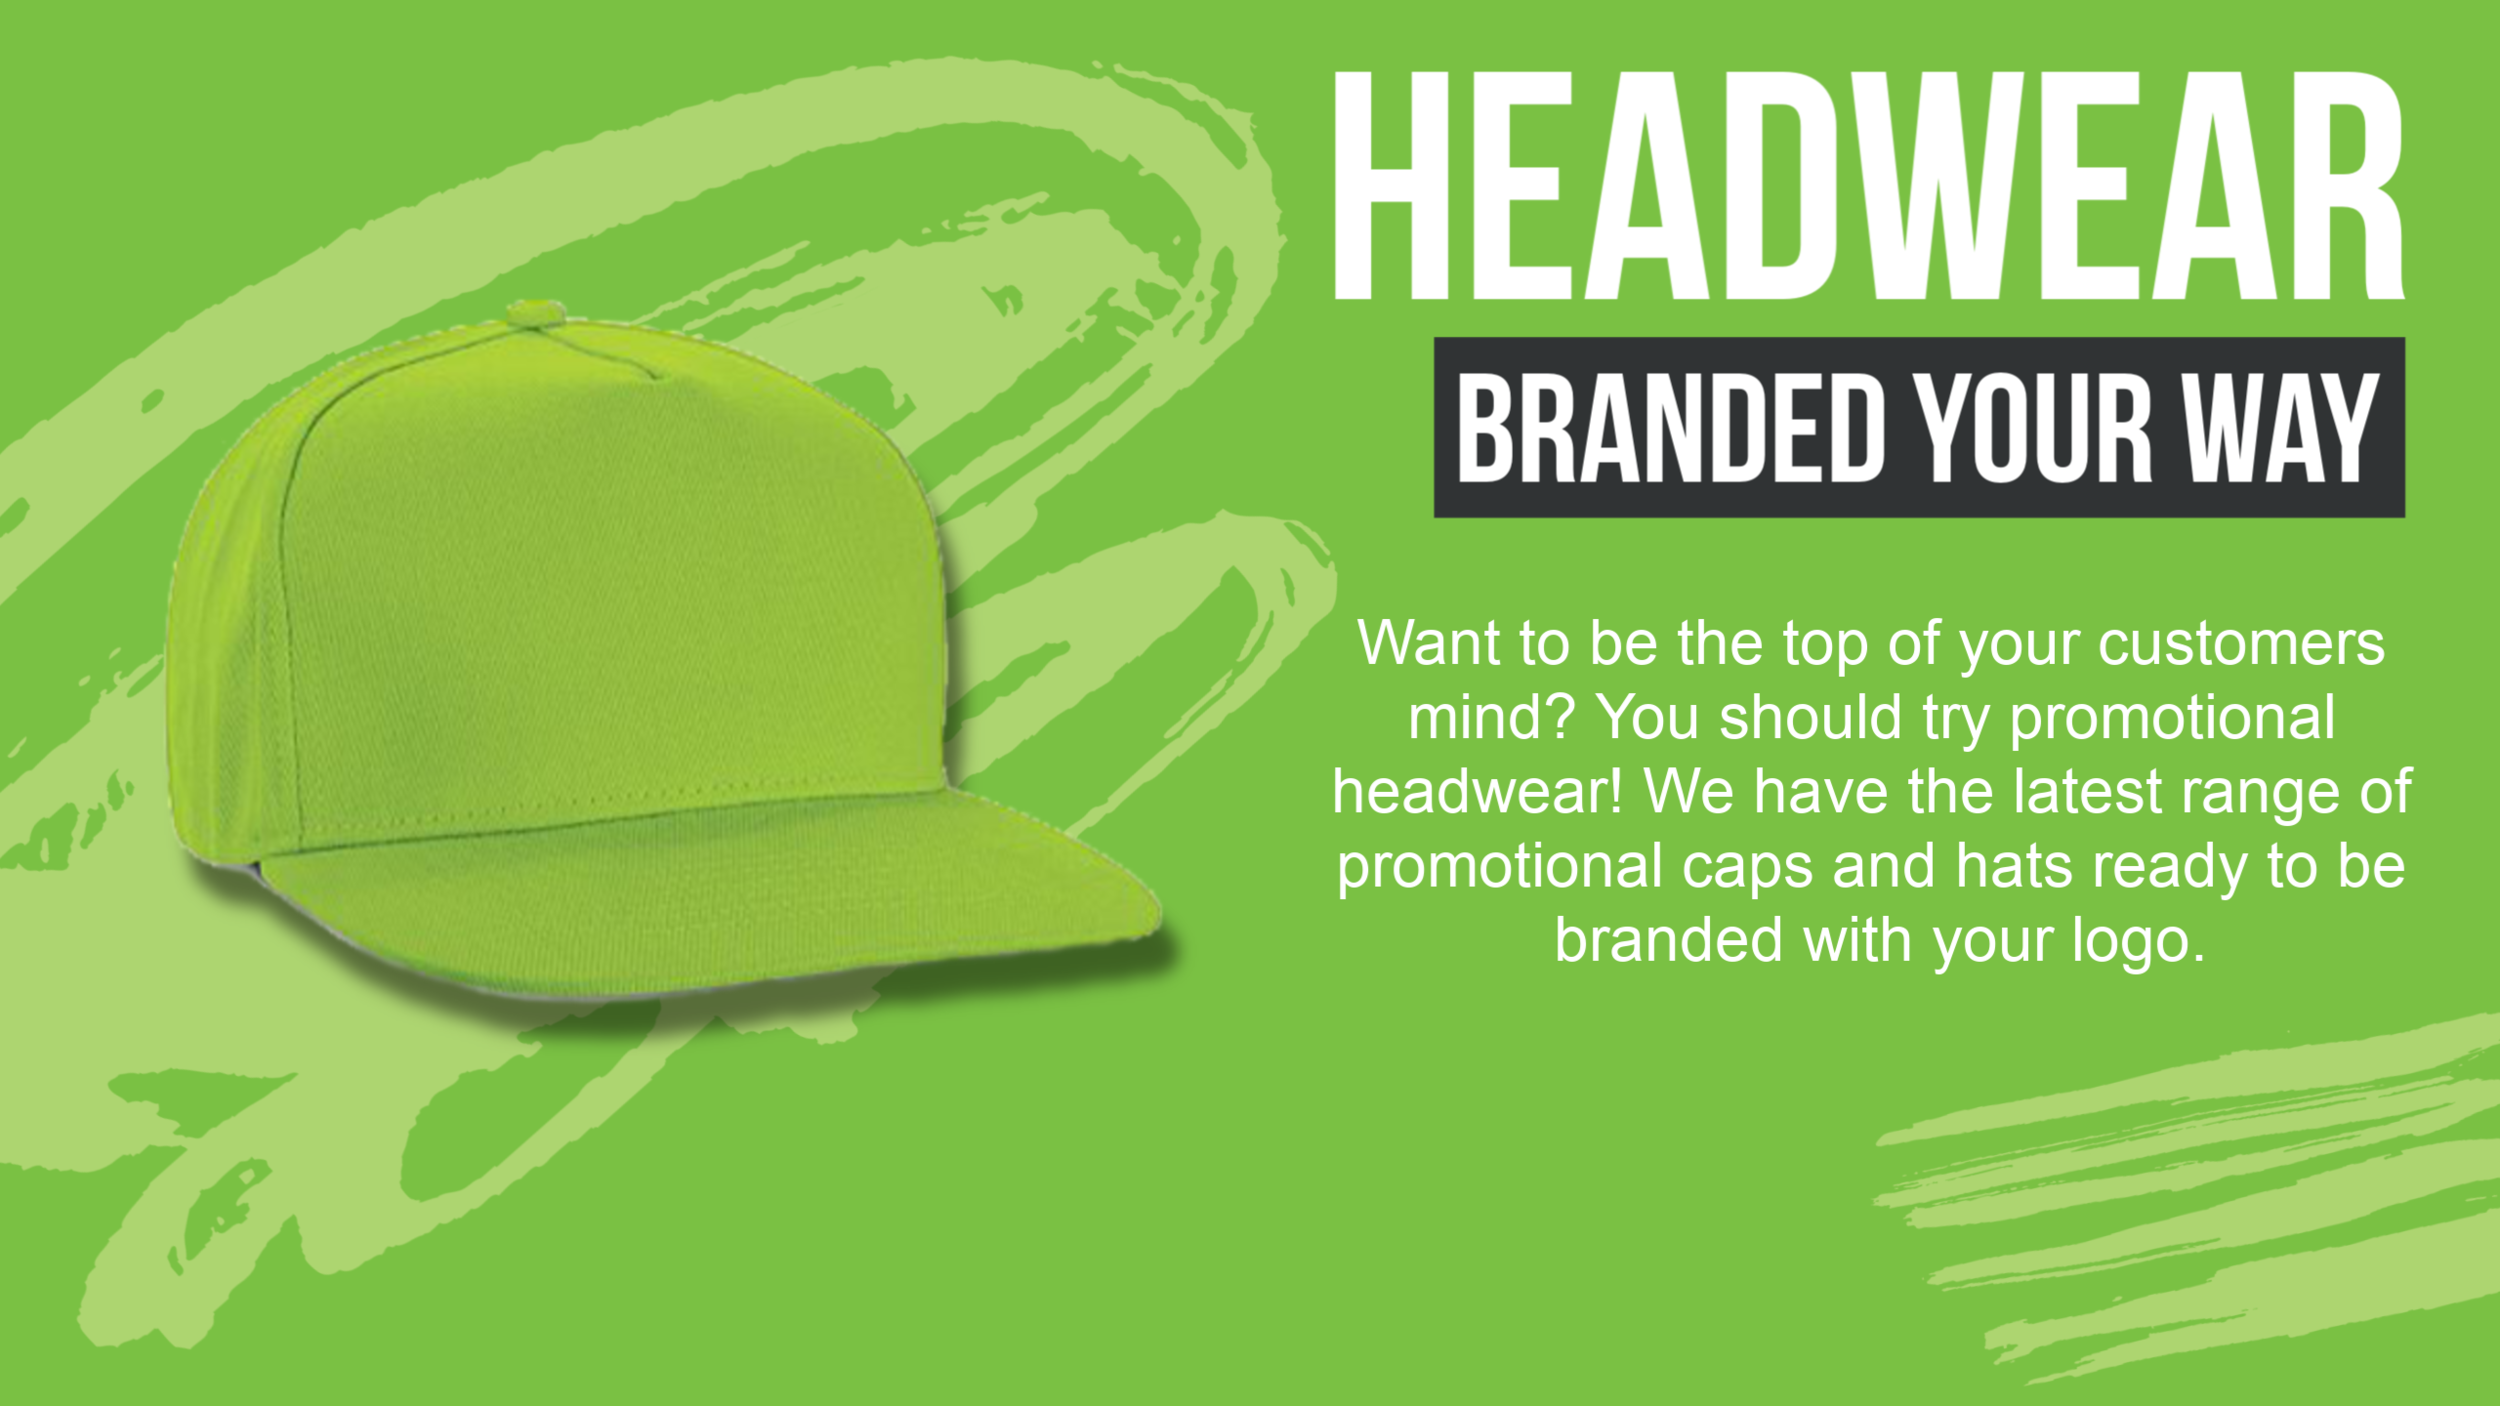 Promotional Headwear and Embroidered Caps: Promoloco Australia